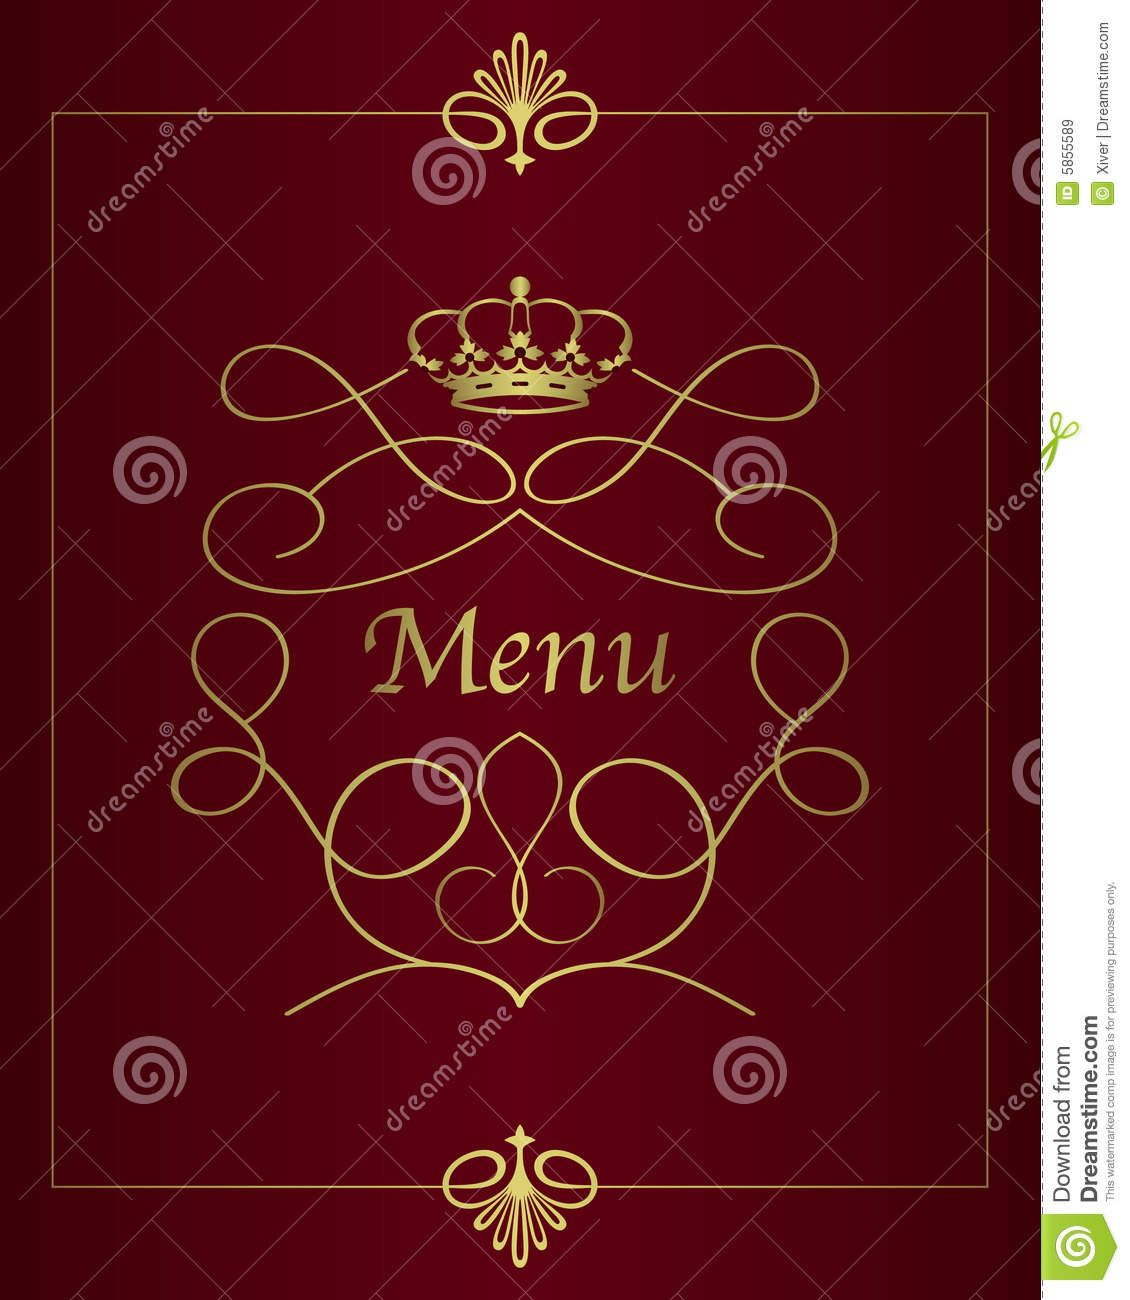 menu design background royalty free stock images image